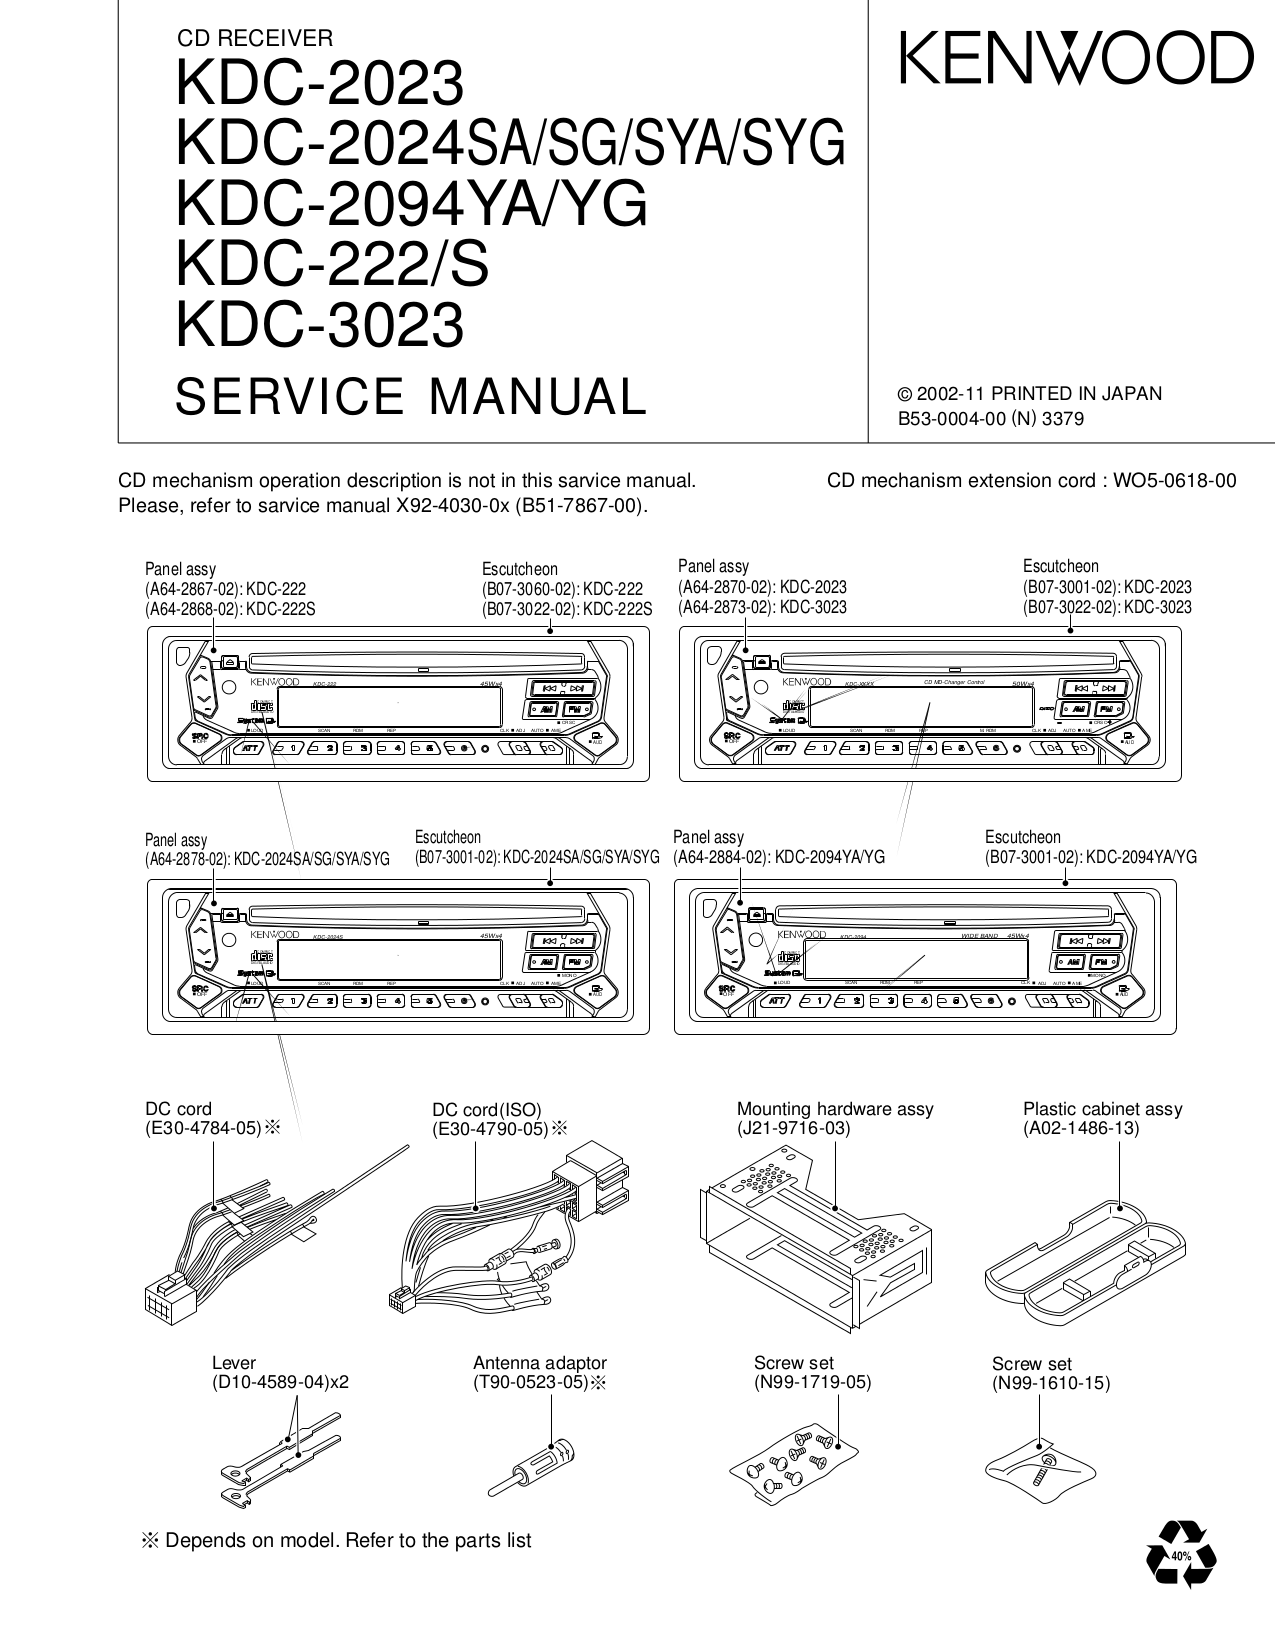 Kenwood Kdc 122 Wiring Diagram 138 Detailed Diagrams Manual 30 Images Mp142 Code Kdc2023